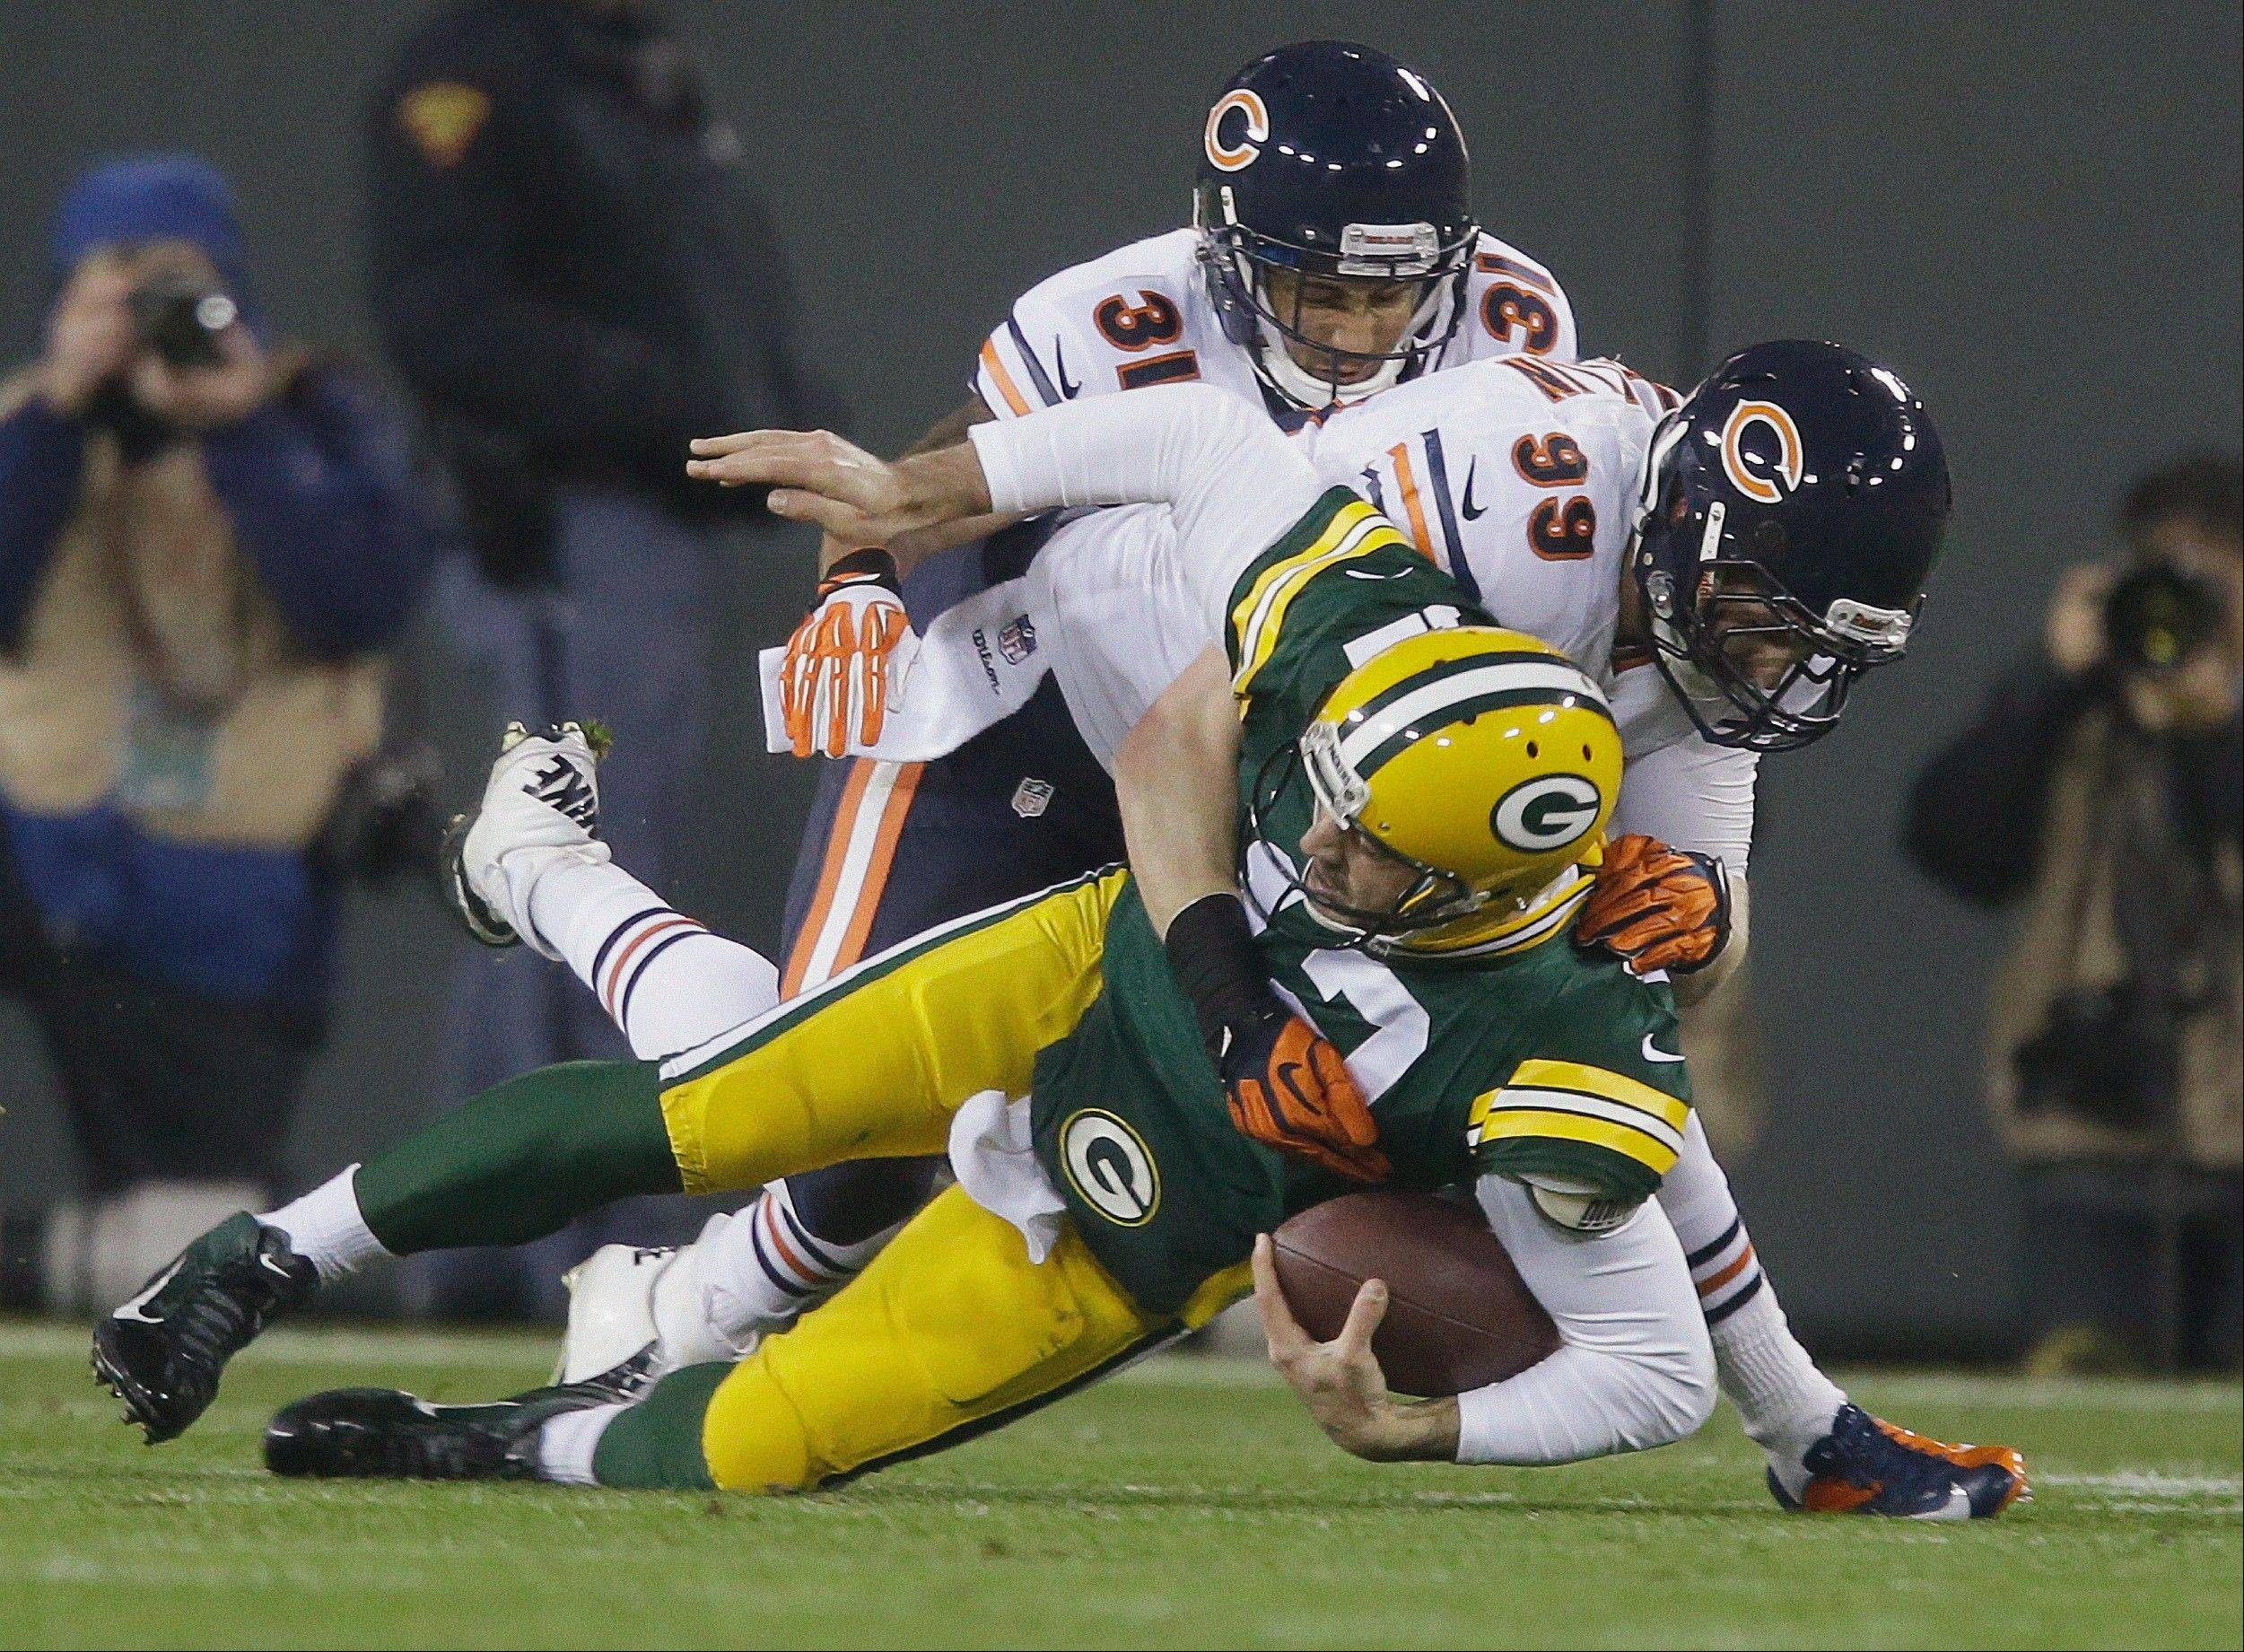 Bears' stunning triumph over Packers as NFL as it gets